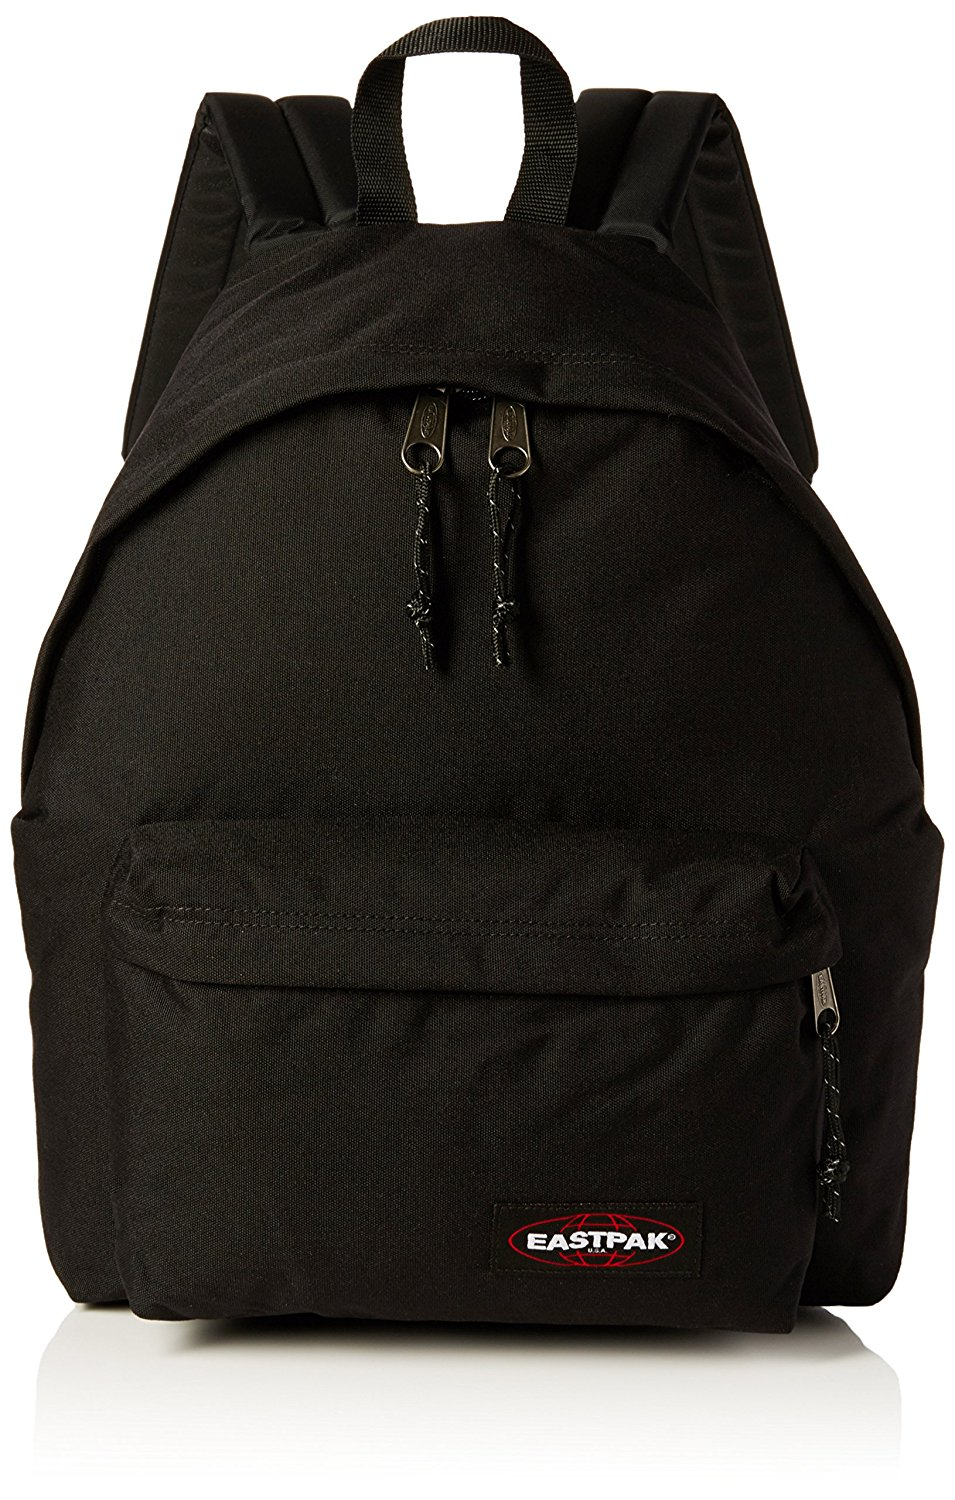 Eastpak Padded Pak'r Pakr Backpack Bag - All colors